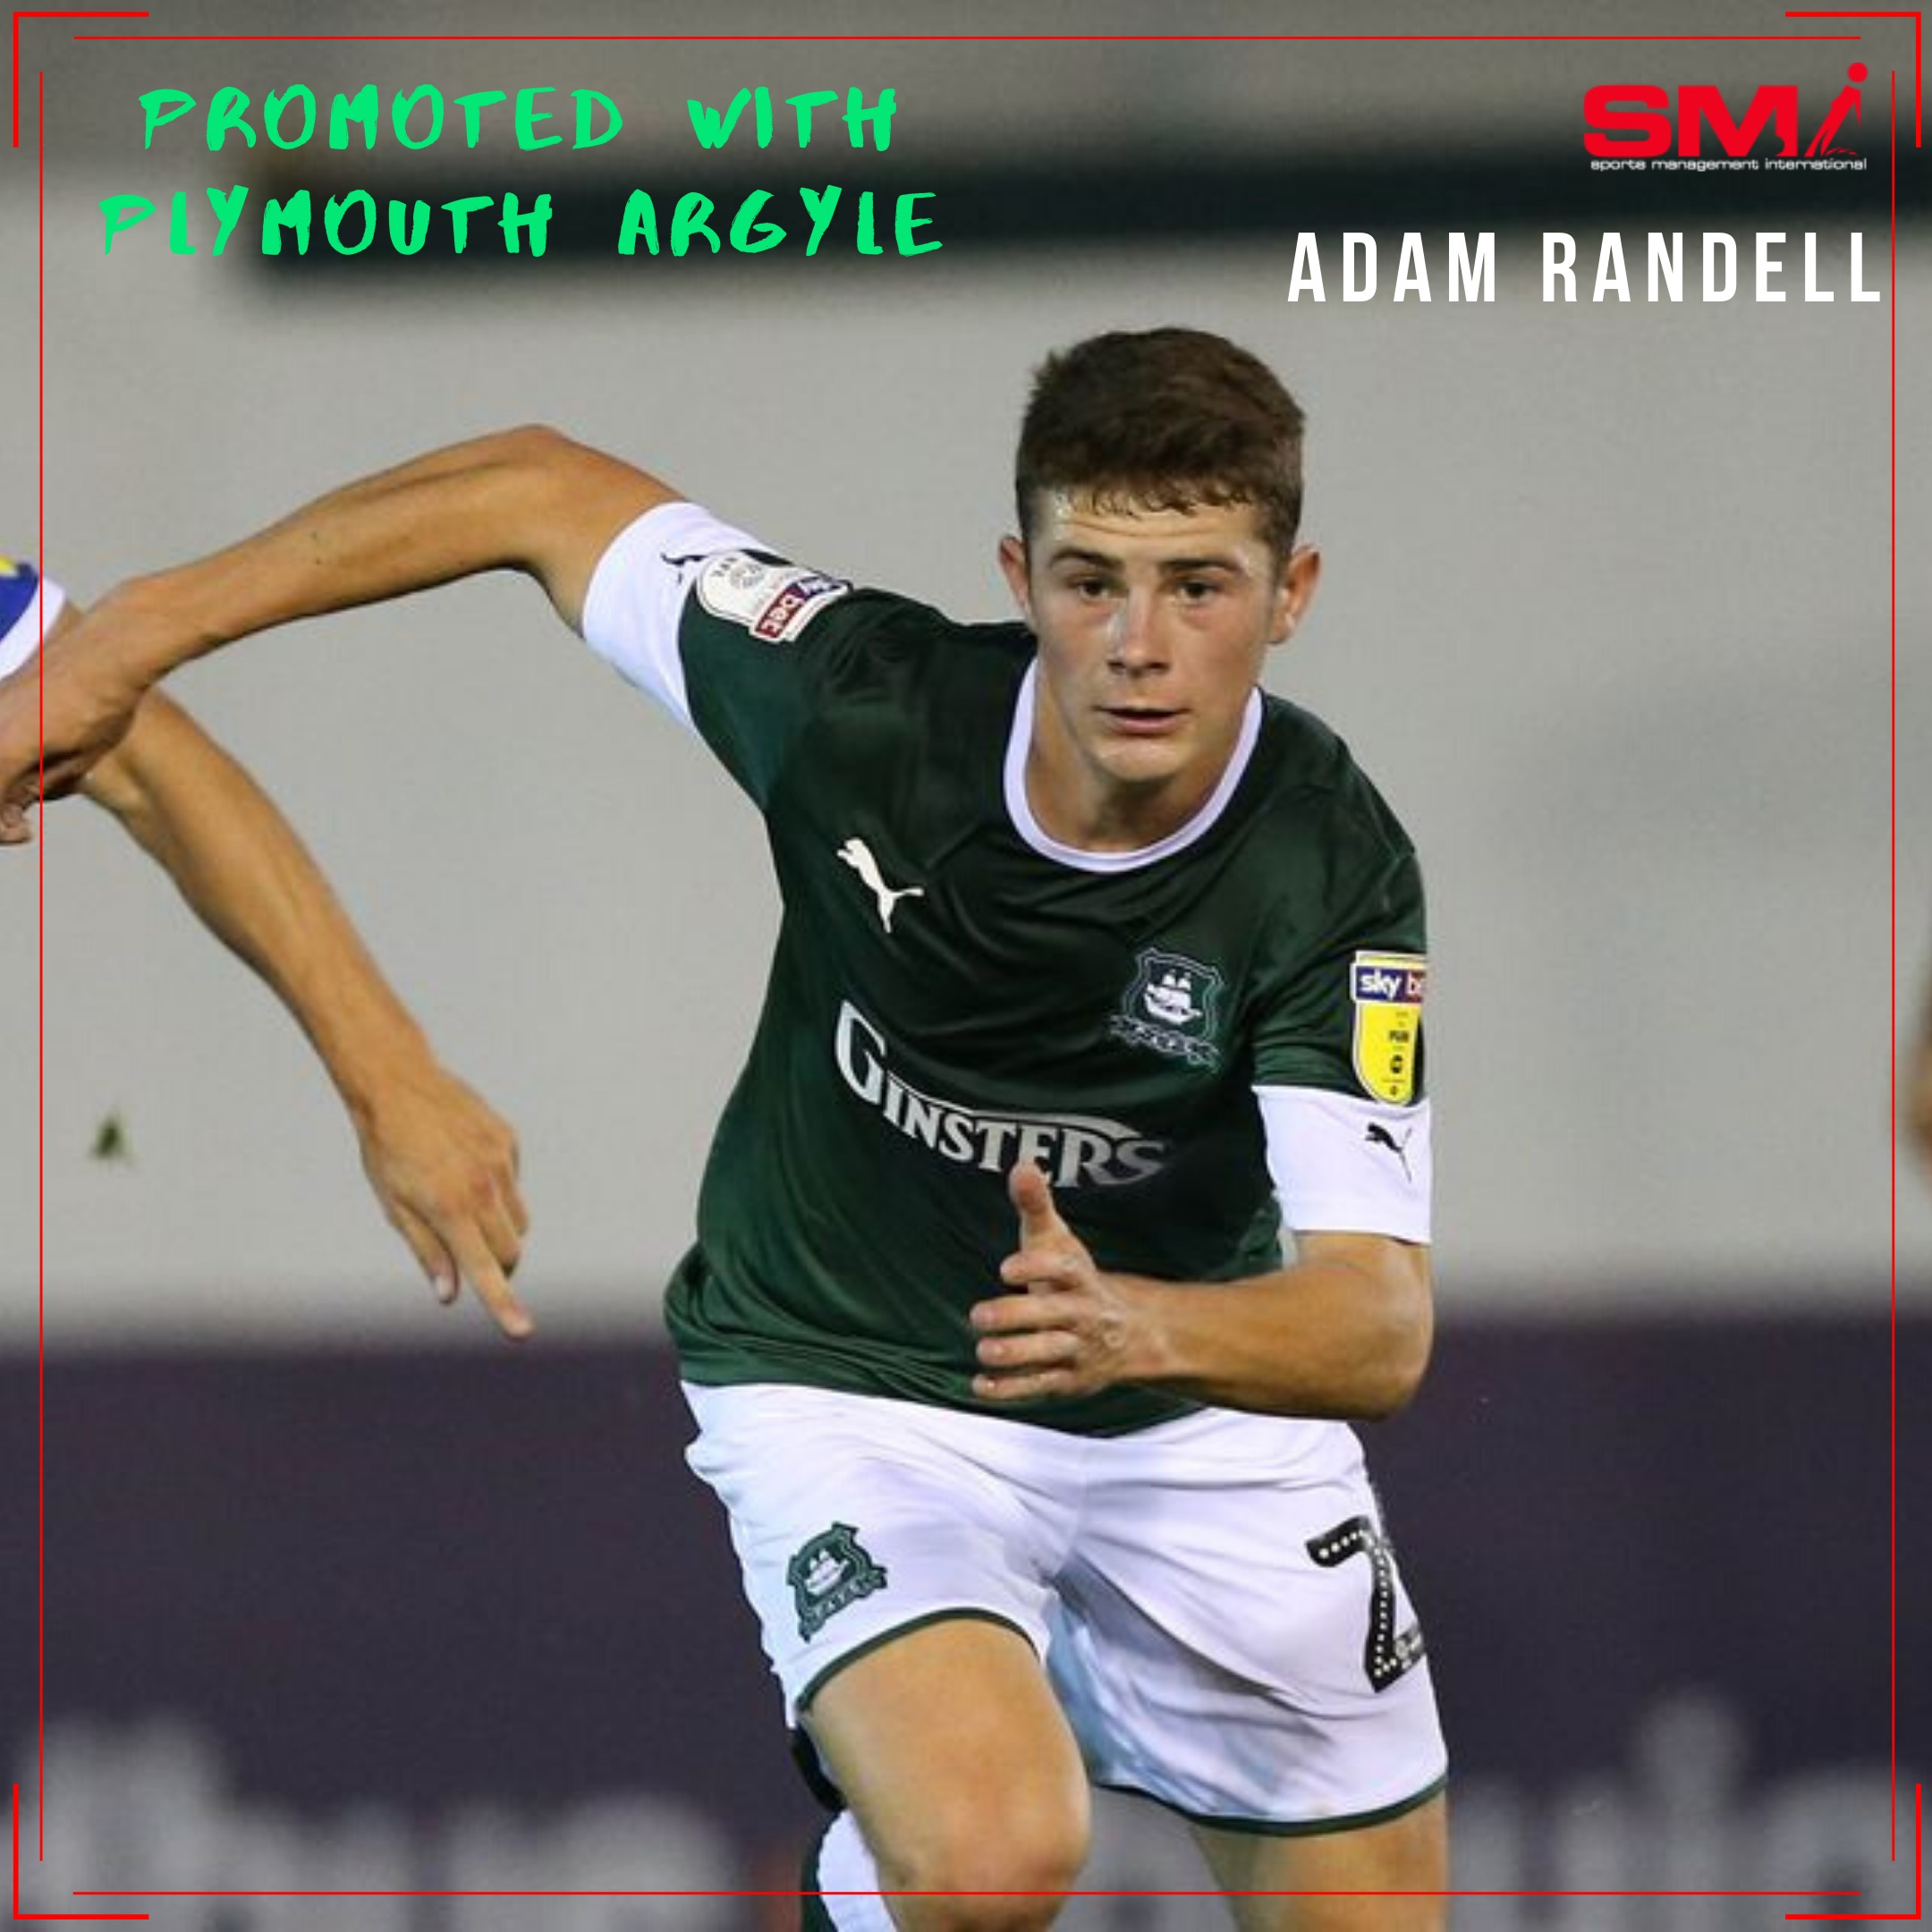 Adam Randell Promotion with Plymouth